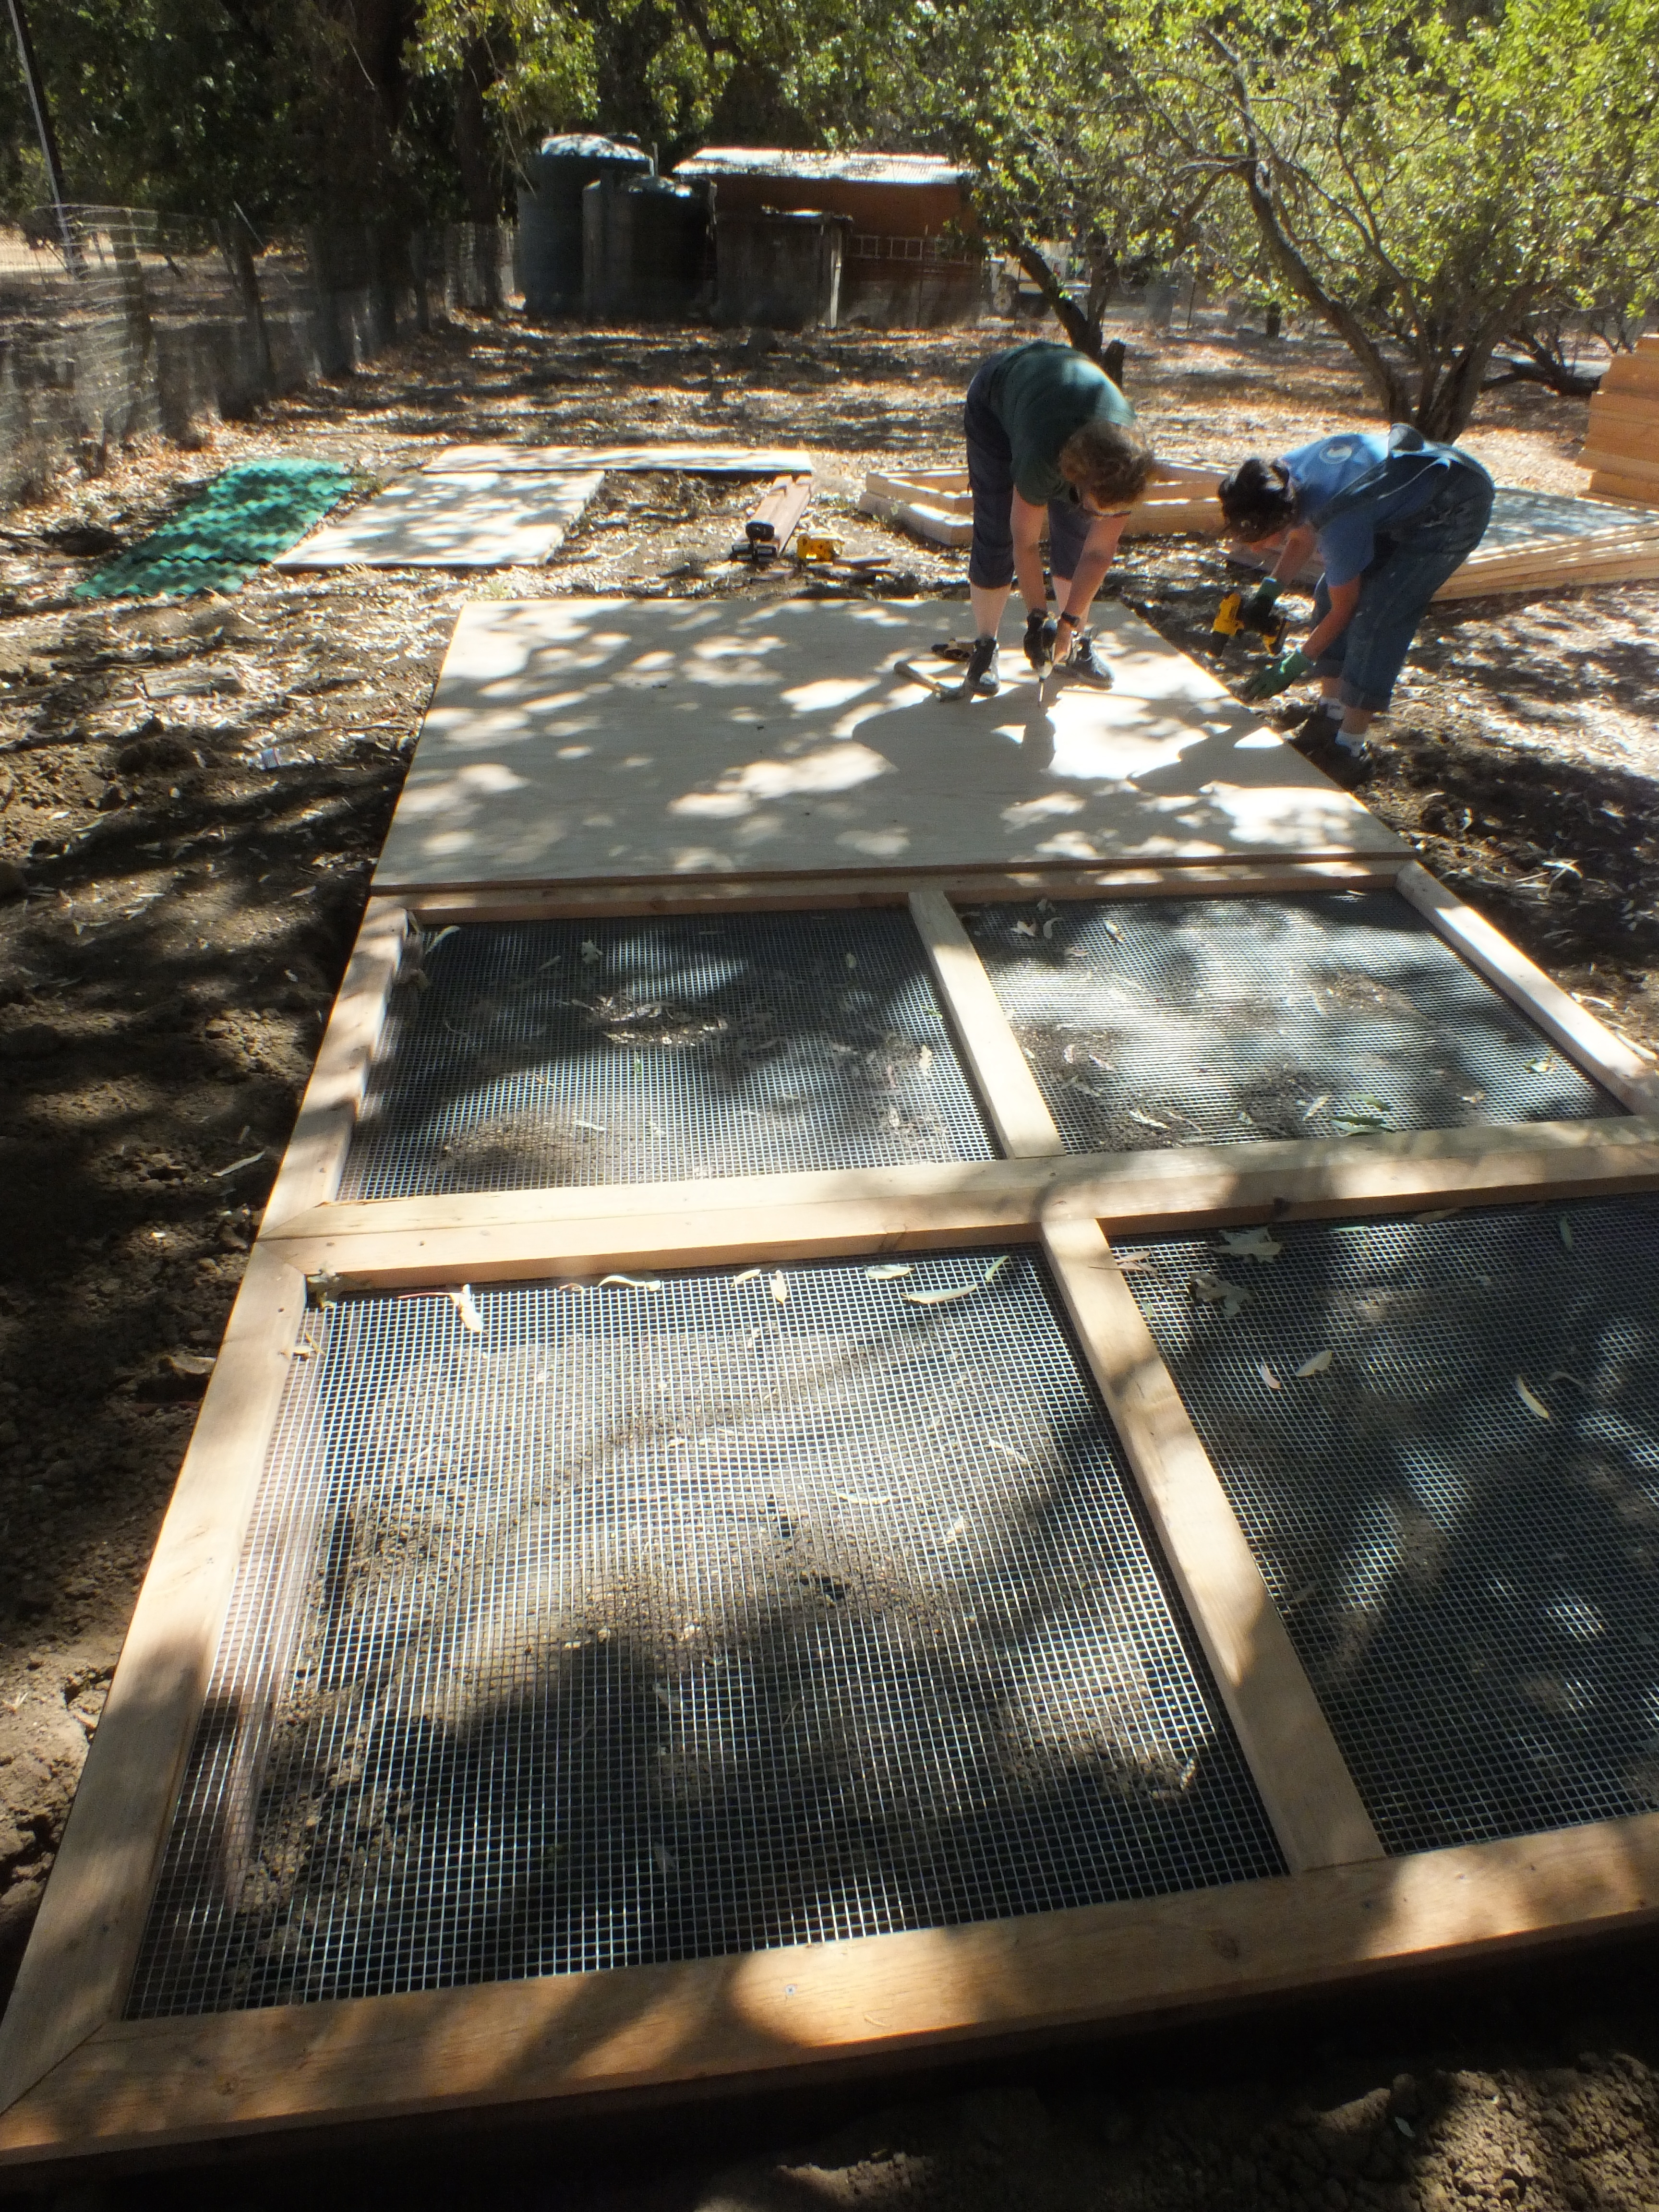 Volunteers Ellie & Helen attach the smooth aviary floor (marine grade plywood) to the predator & rodent-proof base.